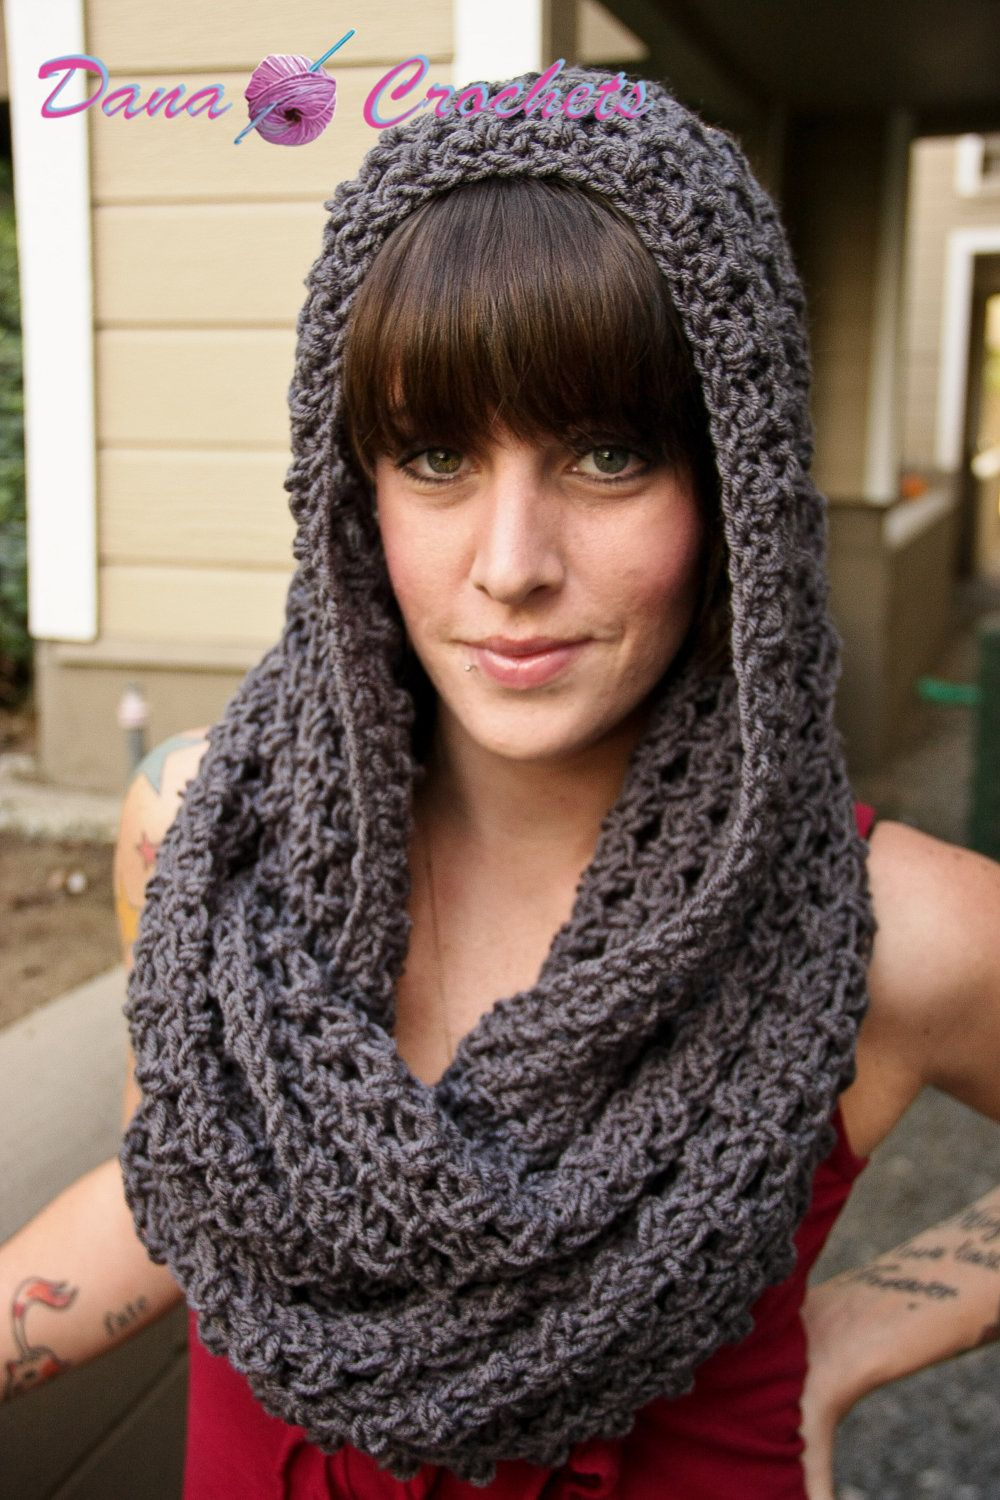 Chunky Hooded Infinity Scarf Cowl Crochet By Danamariecrochets Crochet Hooded Scarf Pattern Chunky Yarn Crochet Pattern Scarf Crochet Pattern